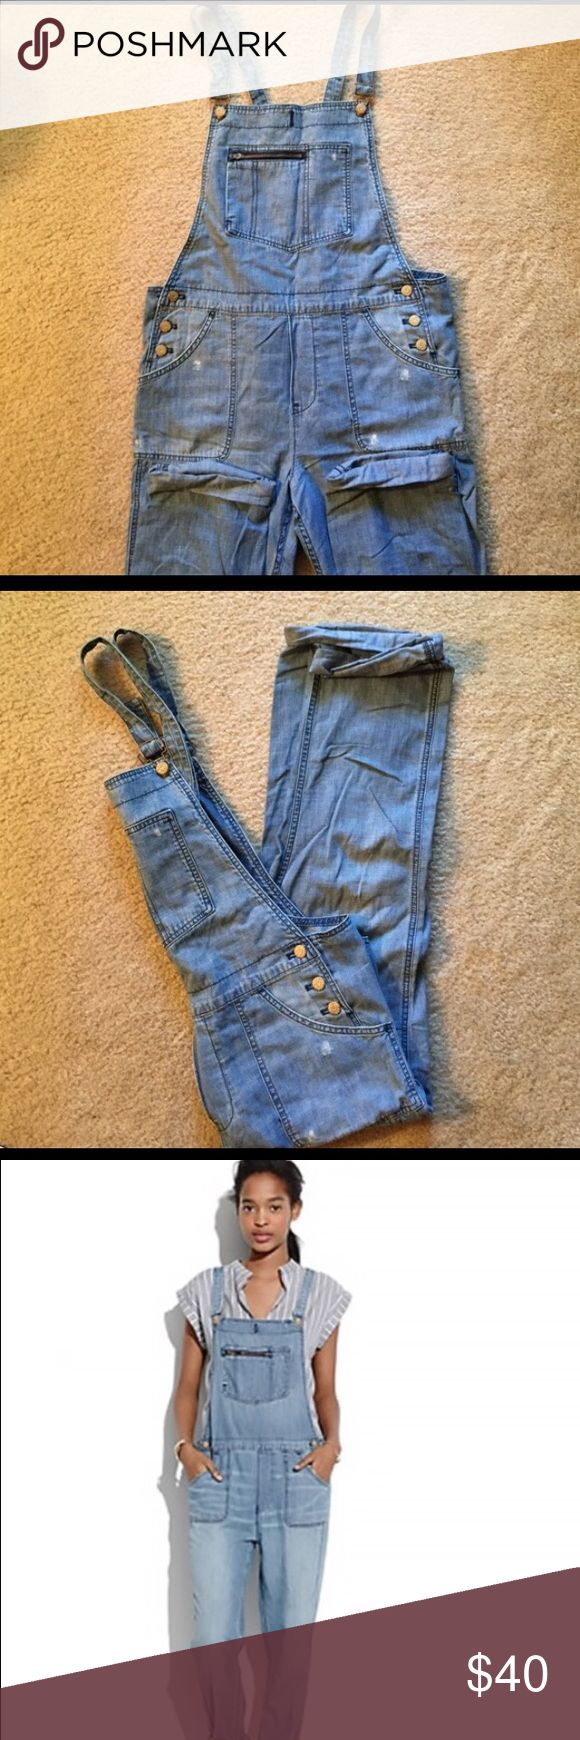 Madewell Blue Park Overalls Size M Relaxed fit overalls from Madewell. Worn once. Madewell Jeans Overalls